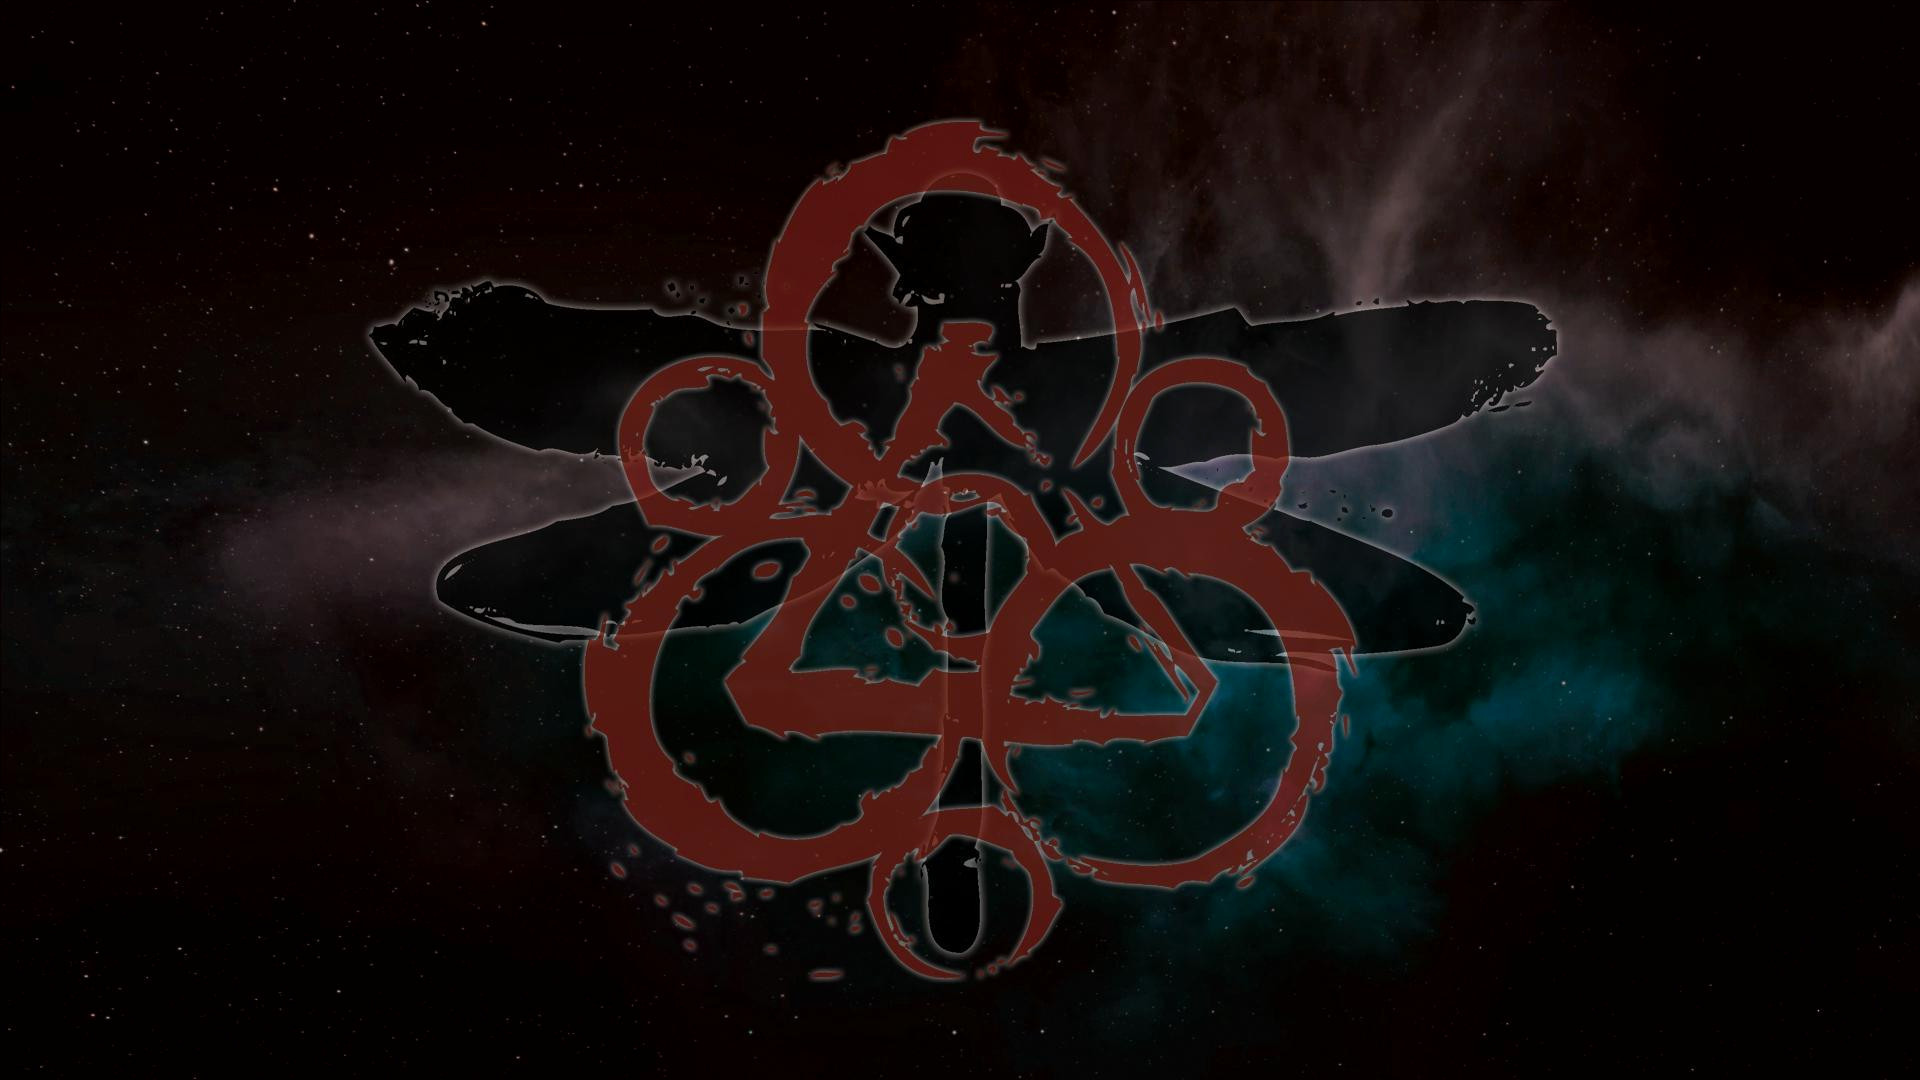 Res: 1920x1080, Slytherin iPhone Wallpaper Unique Coheed and Cambria Wallpapers Quality  Coheed and Cambria Hd